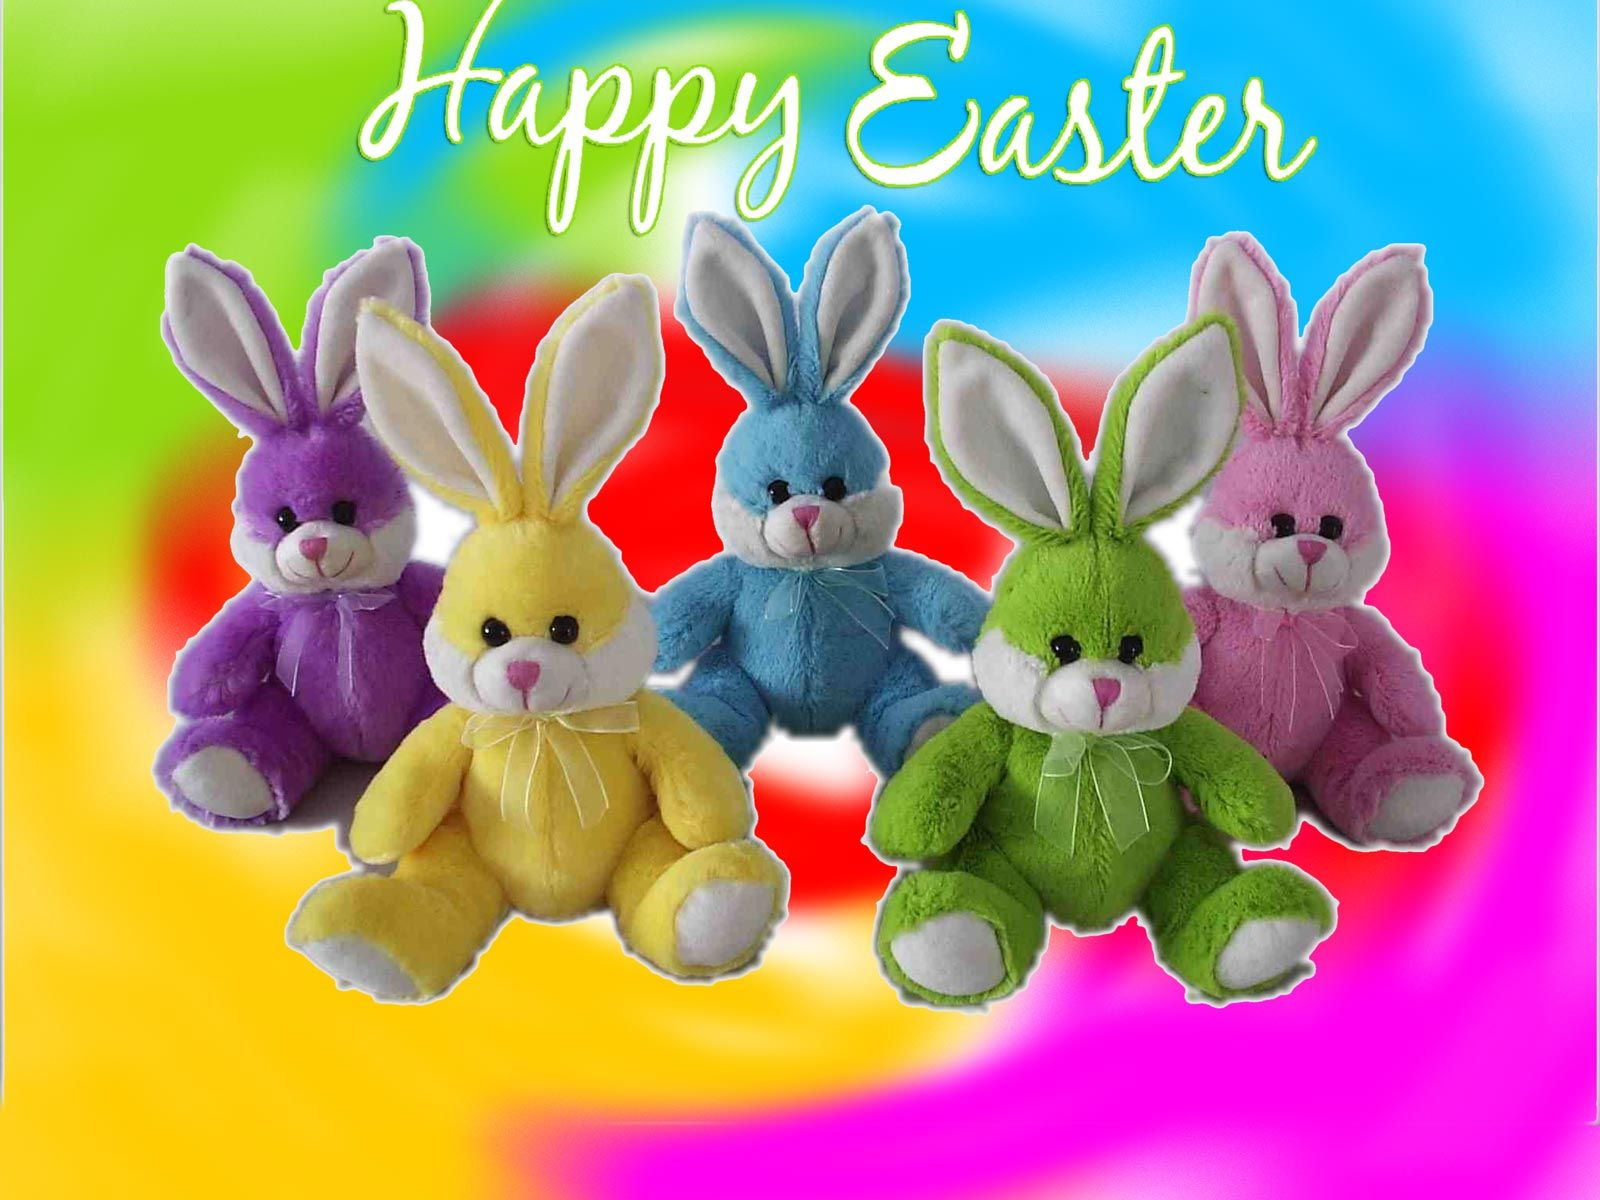 HAPPY EASTER  TO ALL MY FAMILY, FRIENDS &  FACEBOOK FRIENDS!